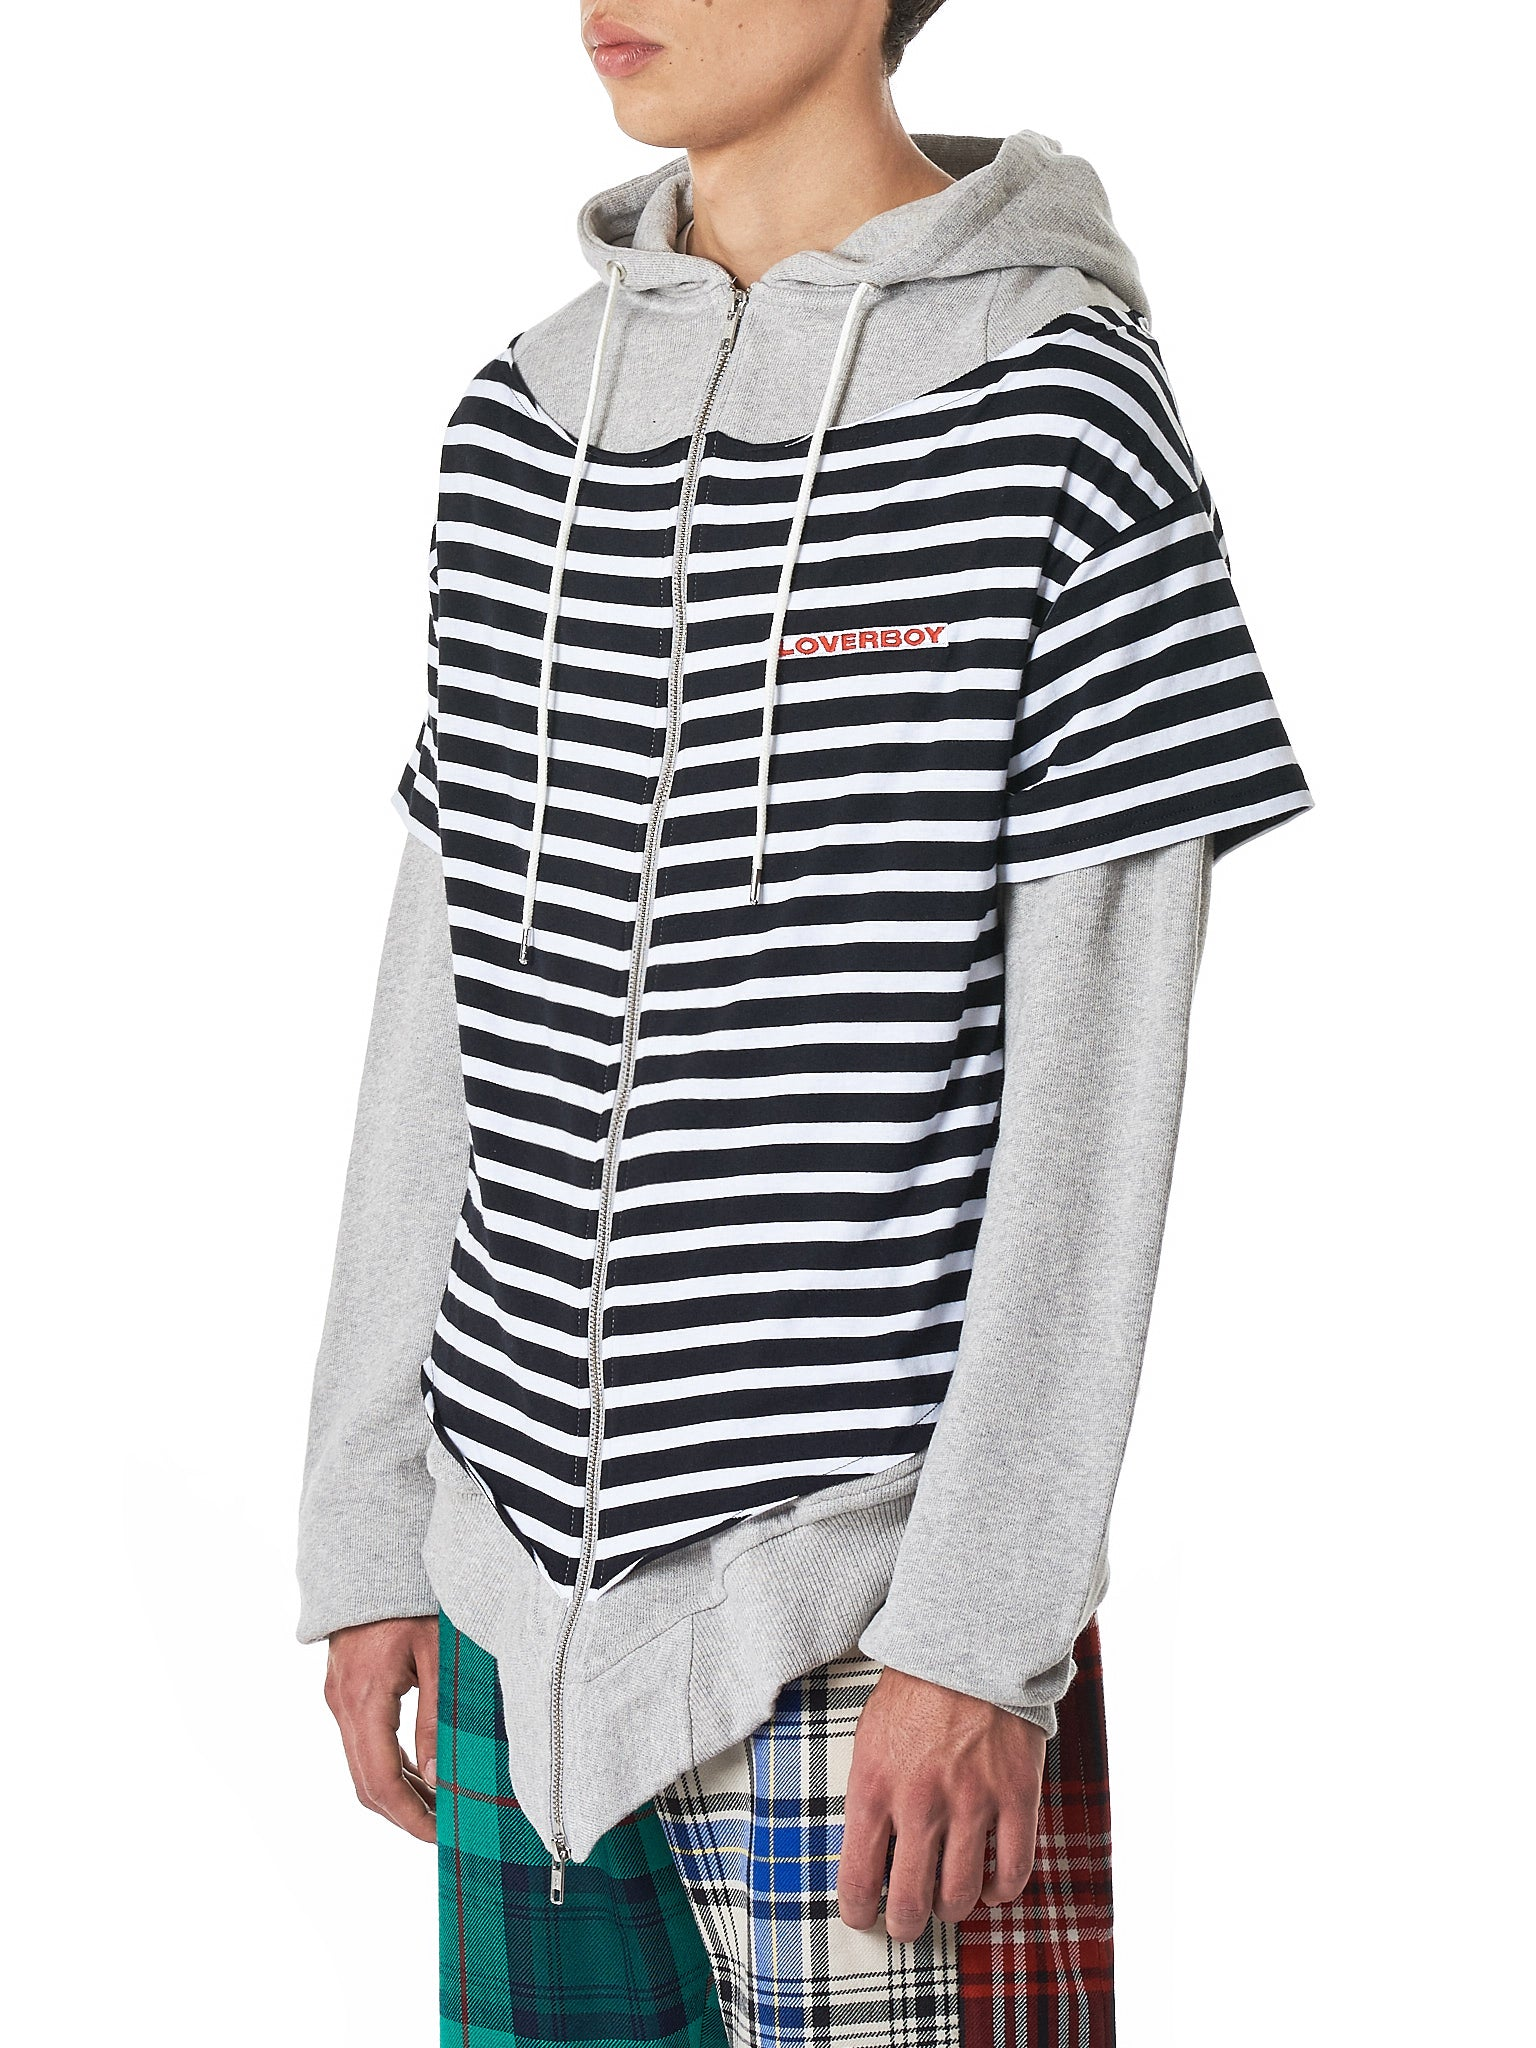 Charles Jeffrey Loverboy Striped Hoodie - Hlorenzo Side